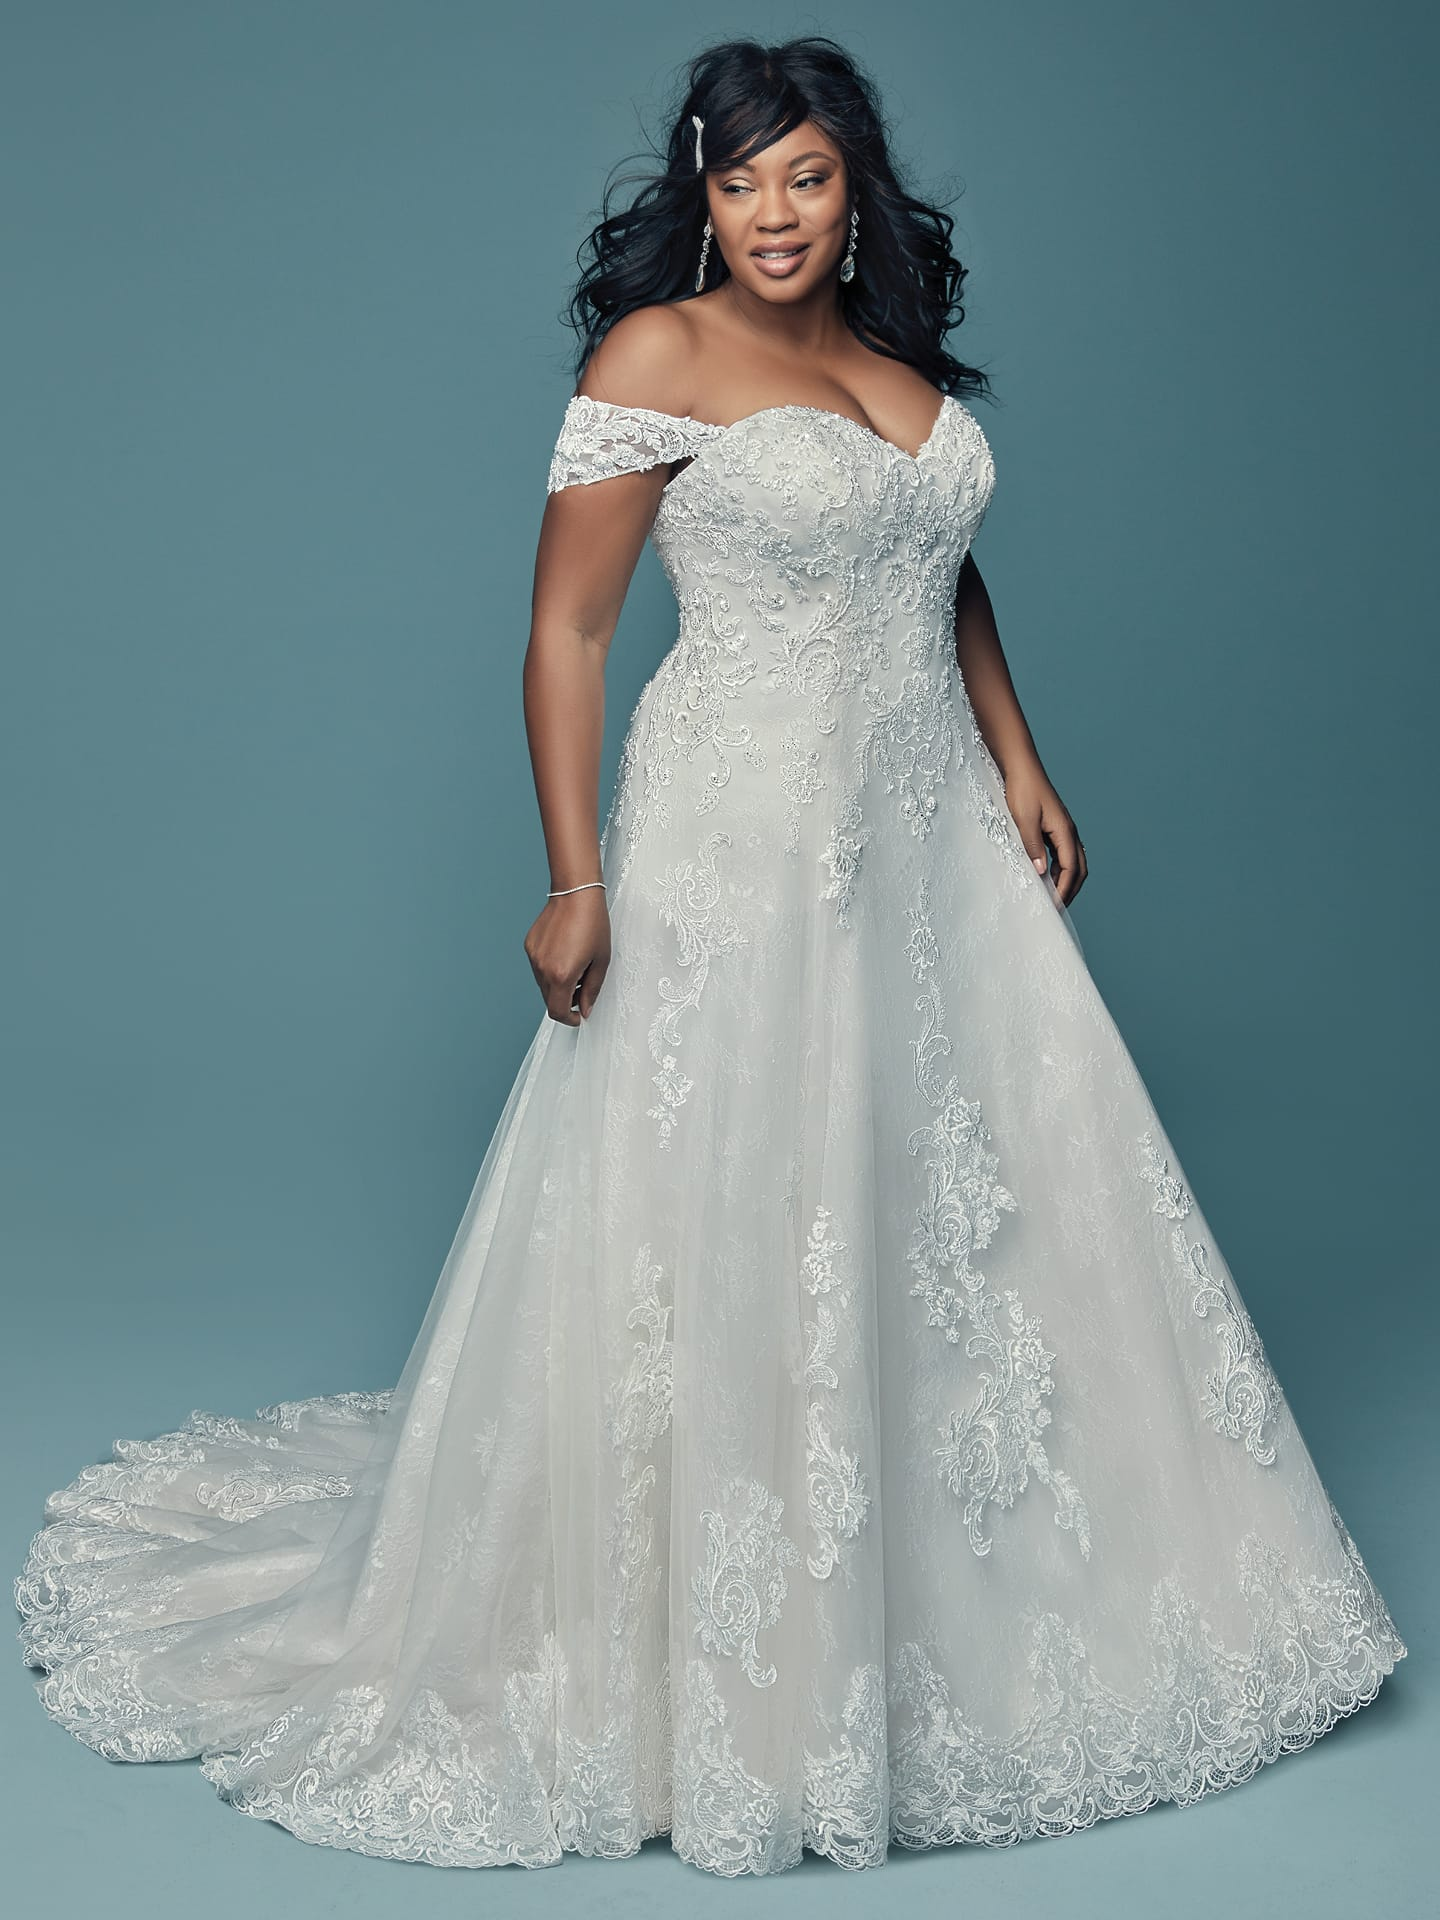 Flattering Wedding Dresses for Curvy Brides - Gail by Maggie Sottero